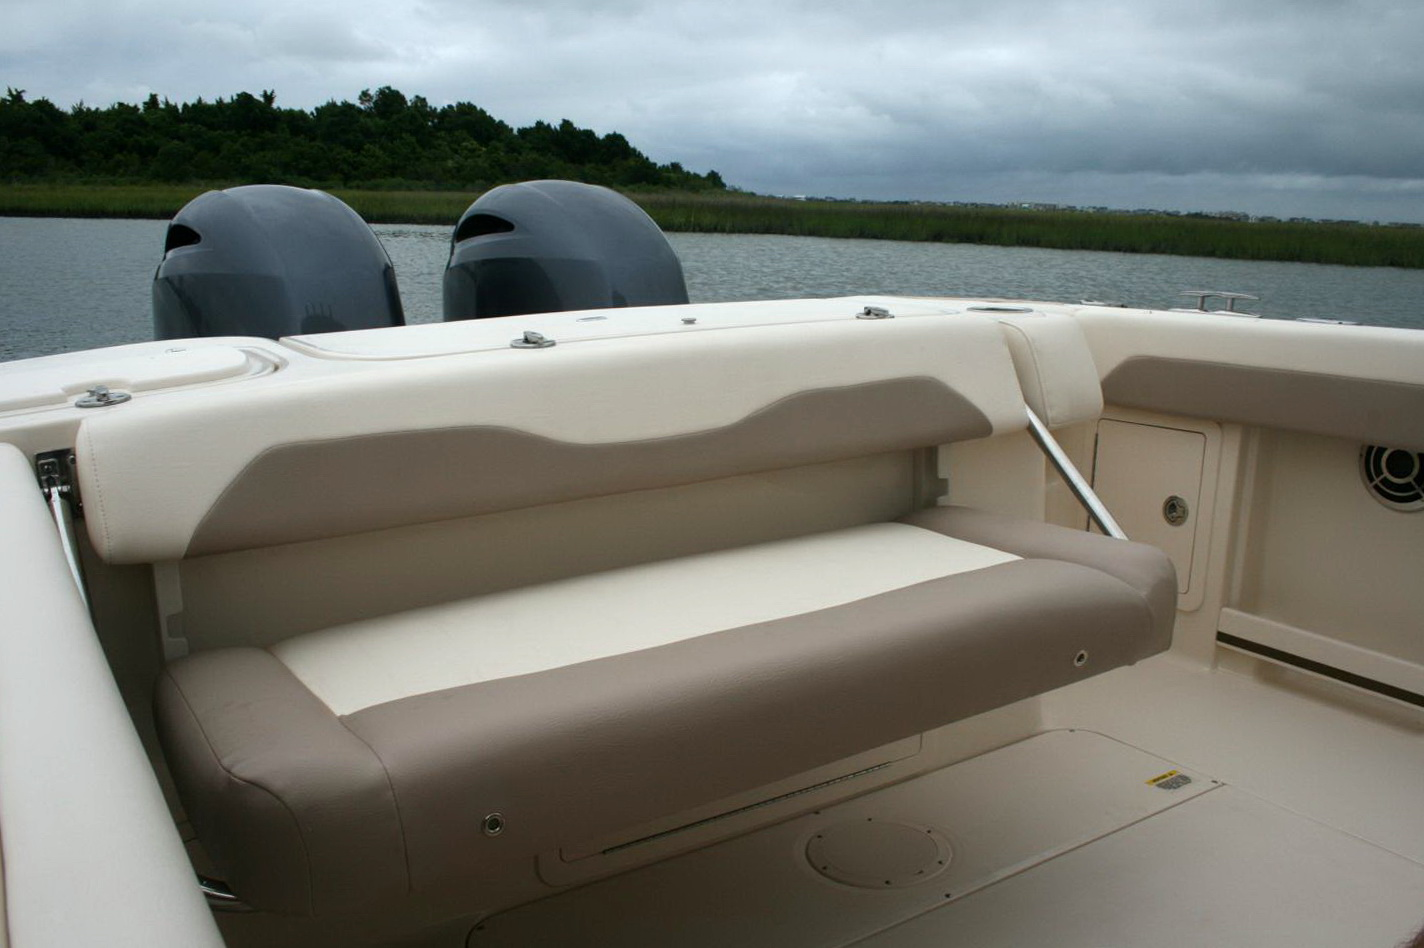 Bench Seat Cushions For Jon Boat Home Design Ideas